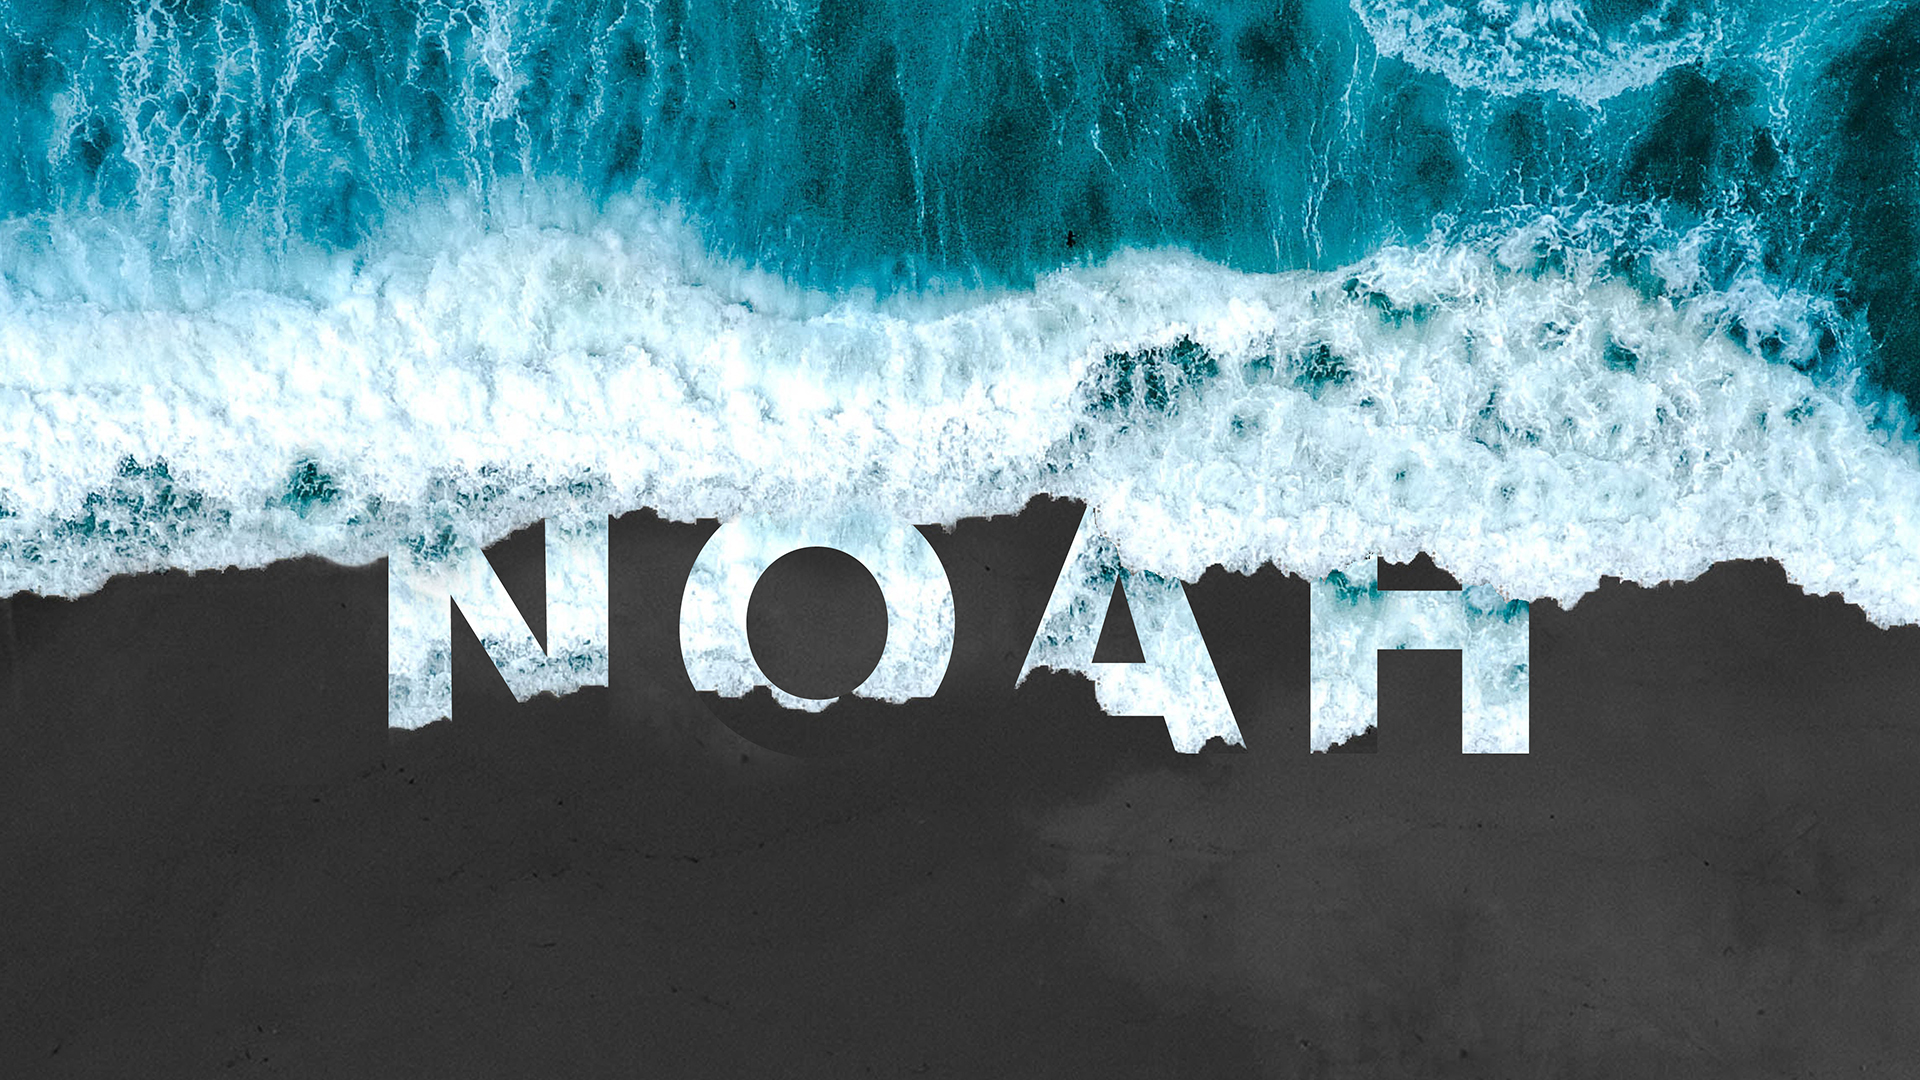 Ocean waves with Noah written on the sand.